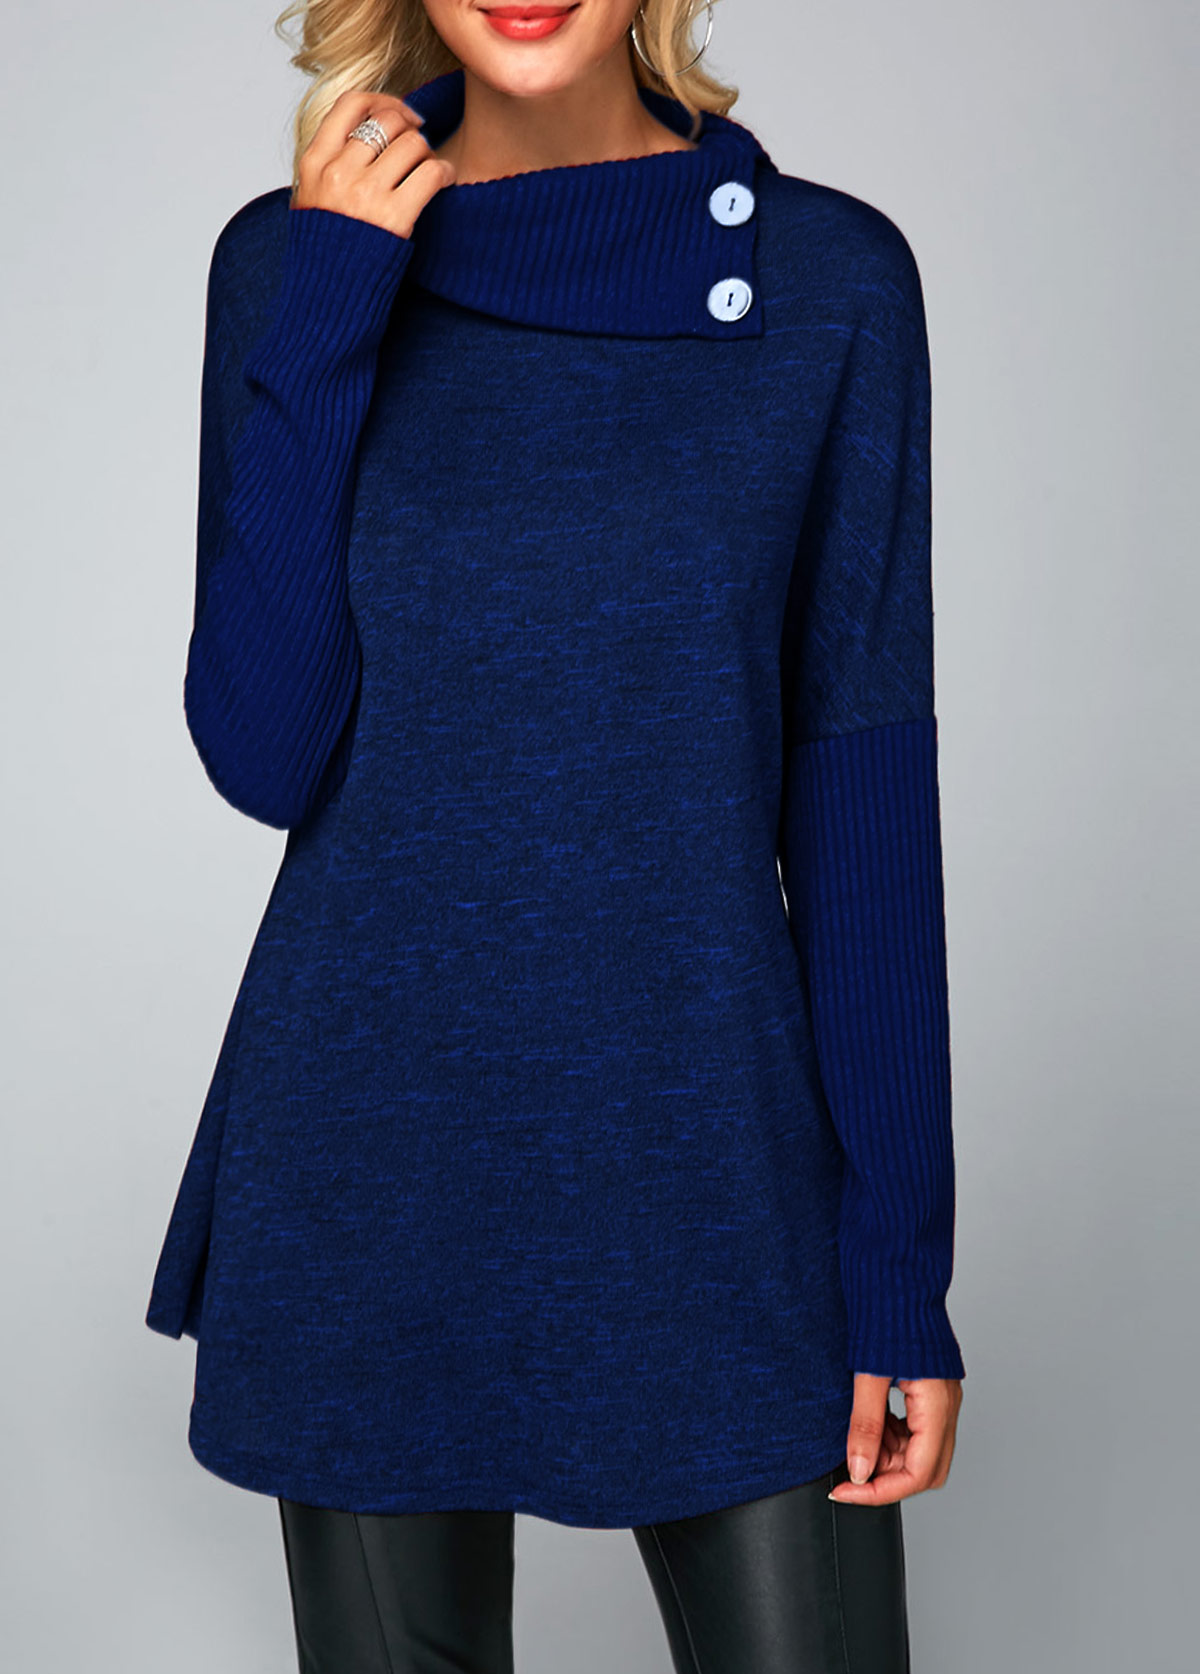 Long Sleeve Button Detail Royal Blue Tunic T Shirt